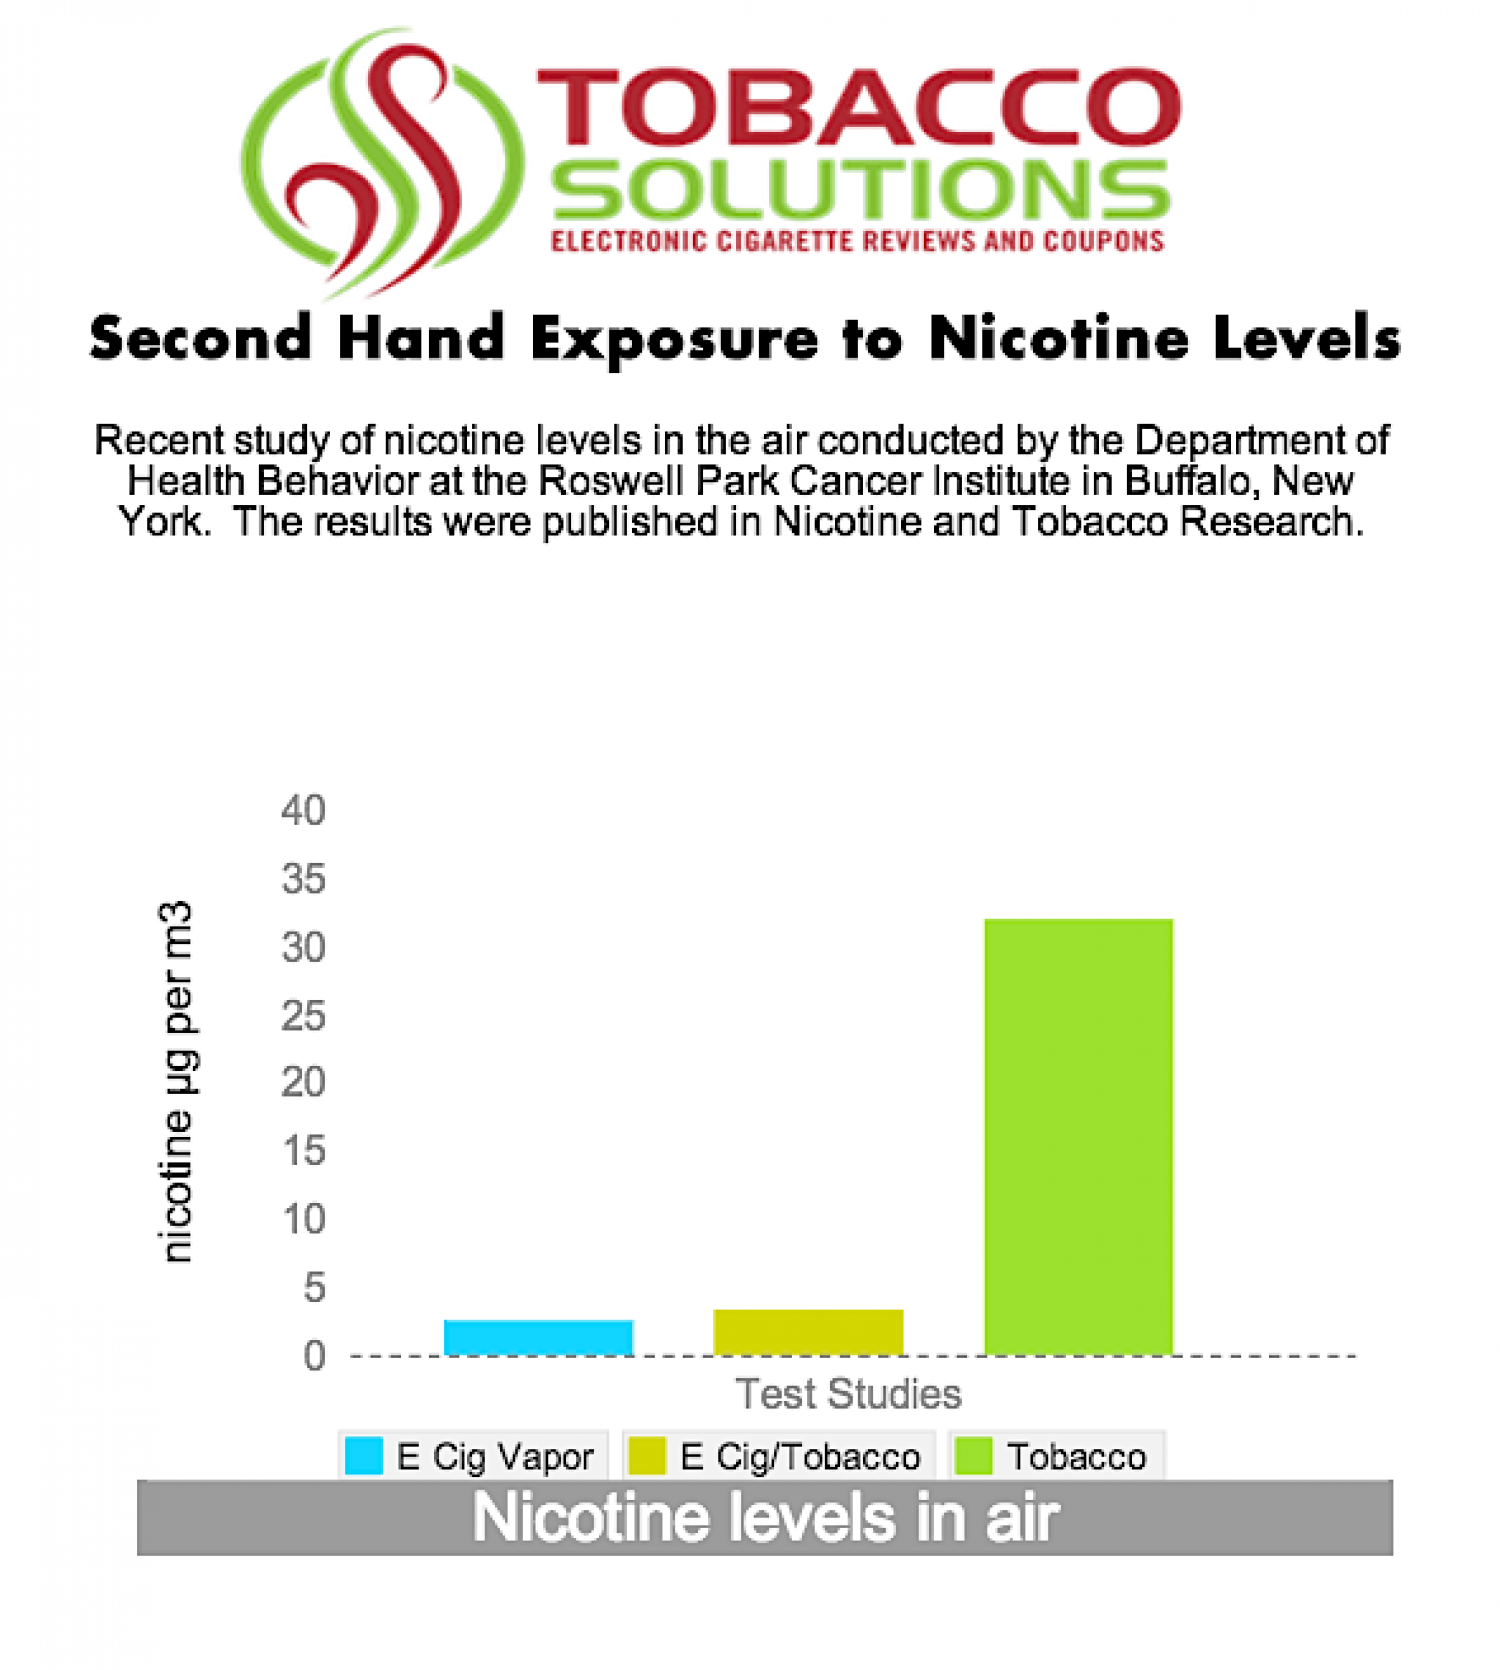 Secondhand exposure to nicotine levels with E Cigs Infographic